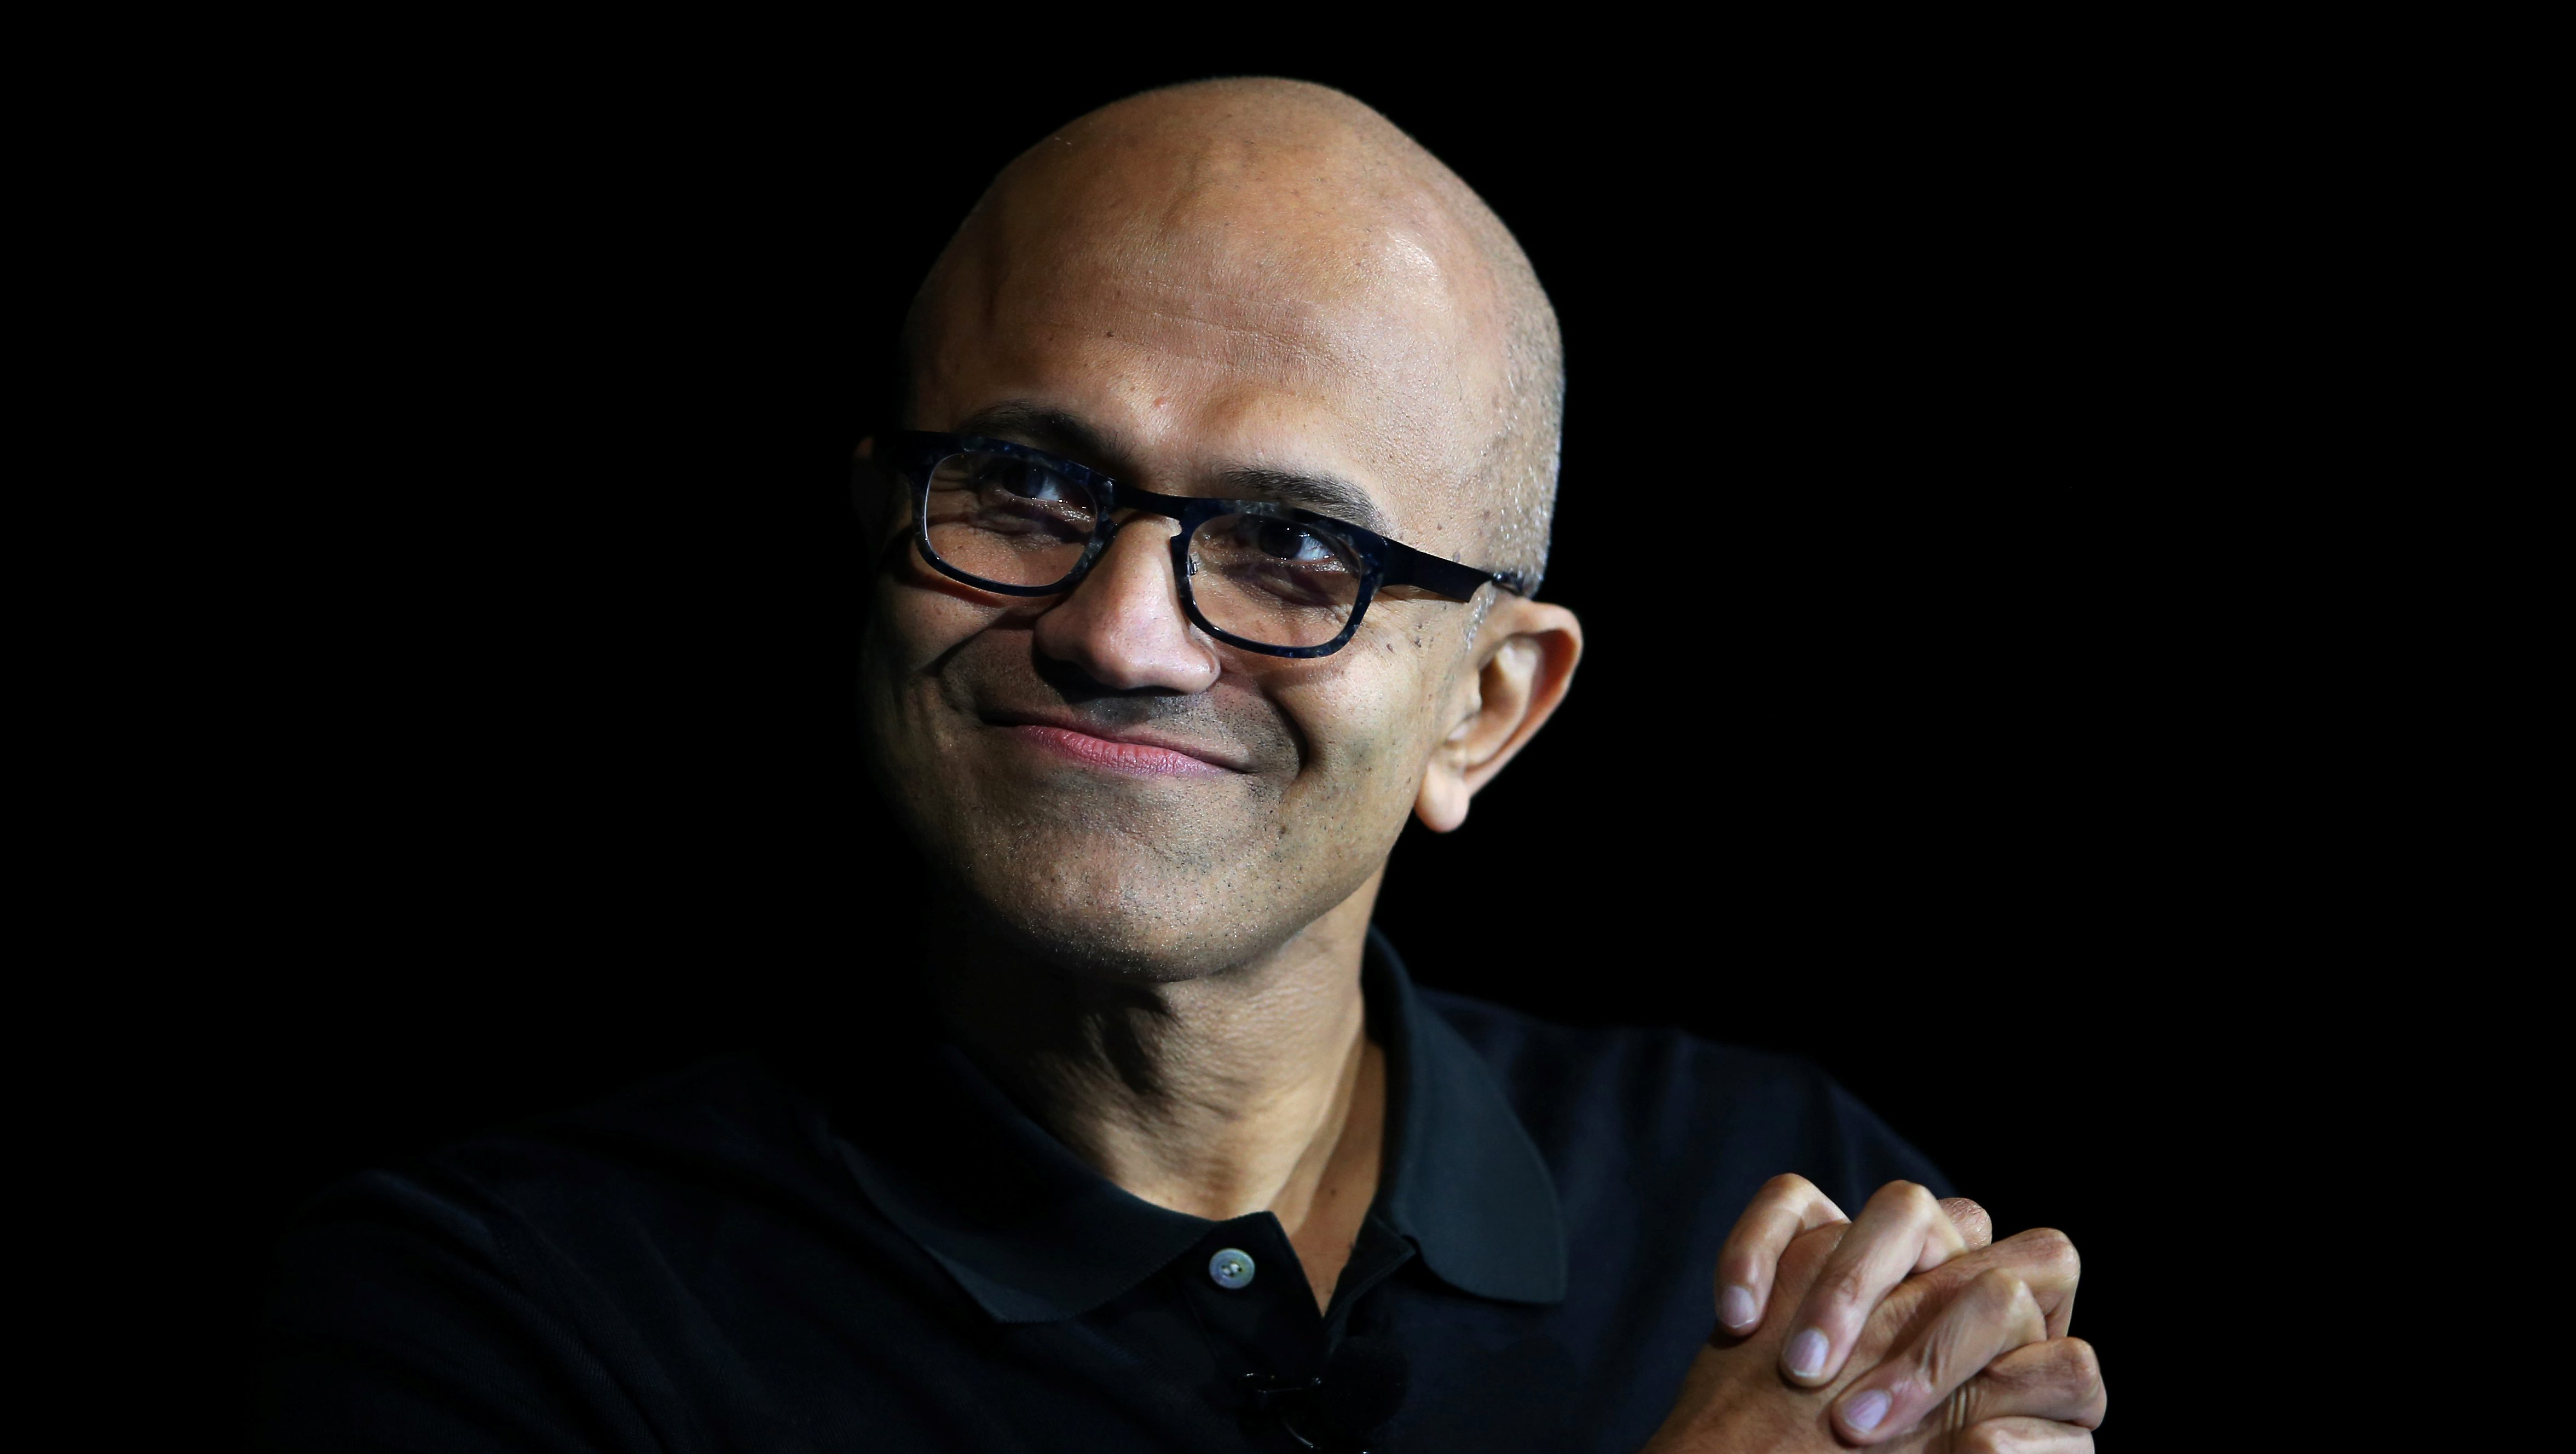 Satya Nadella, CEO of Microsoft, speaks during the opening night of the WSJD Live conference in Laguna Beach, California October 24, 2016.     REUTERS/Mike Blake - S1AEUIXZFJAA